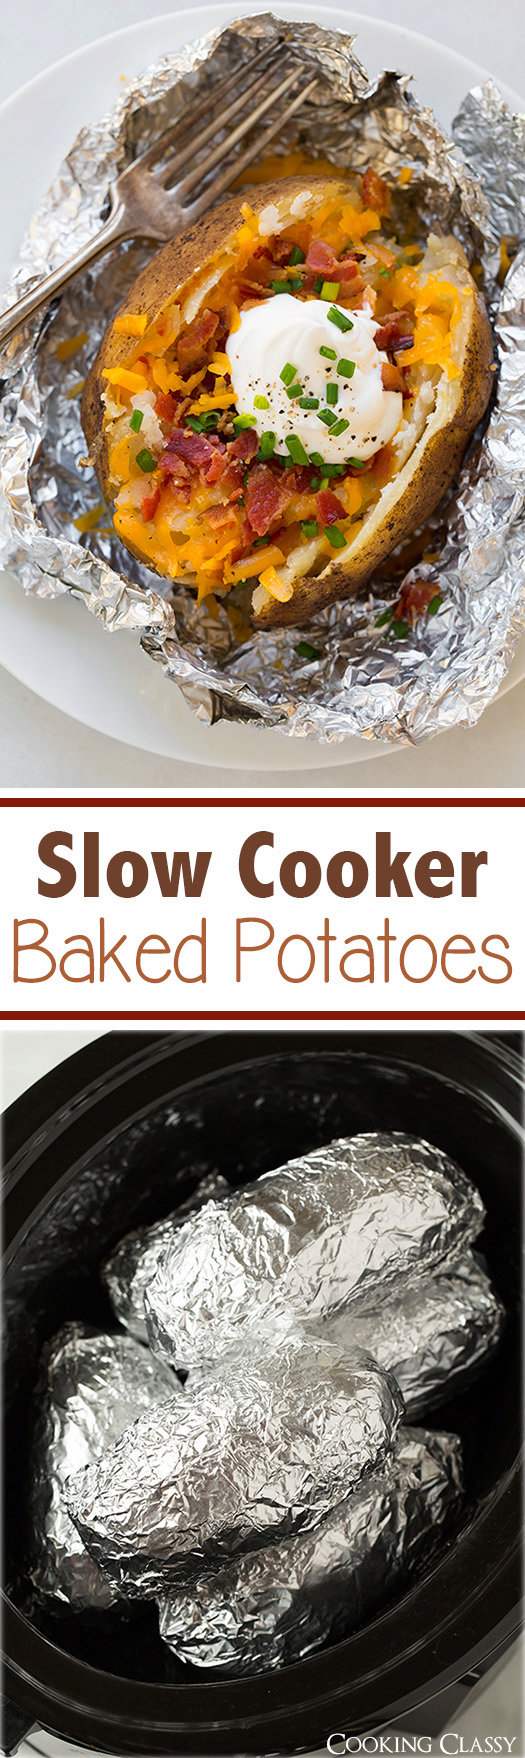 "Slow Cooker ""Baked"" Potatoes"